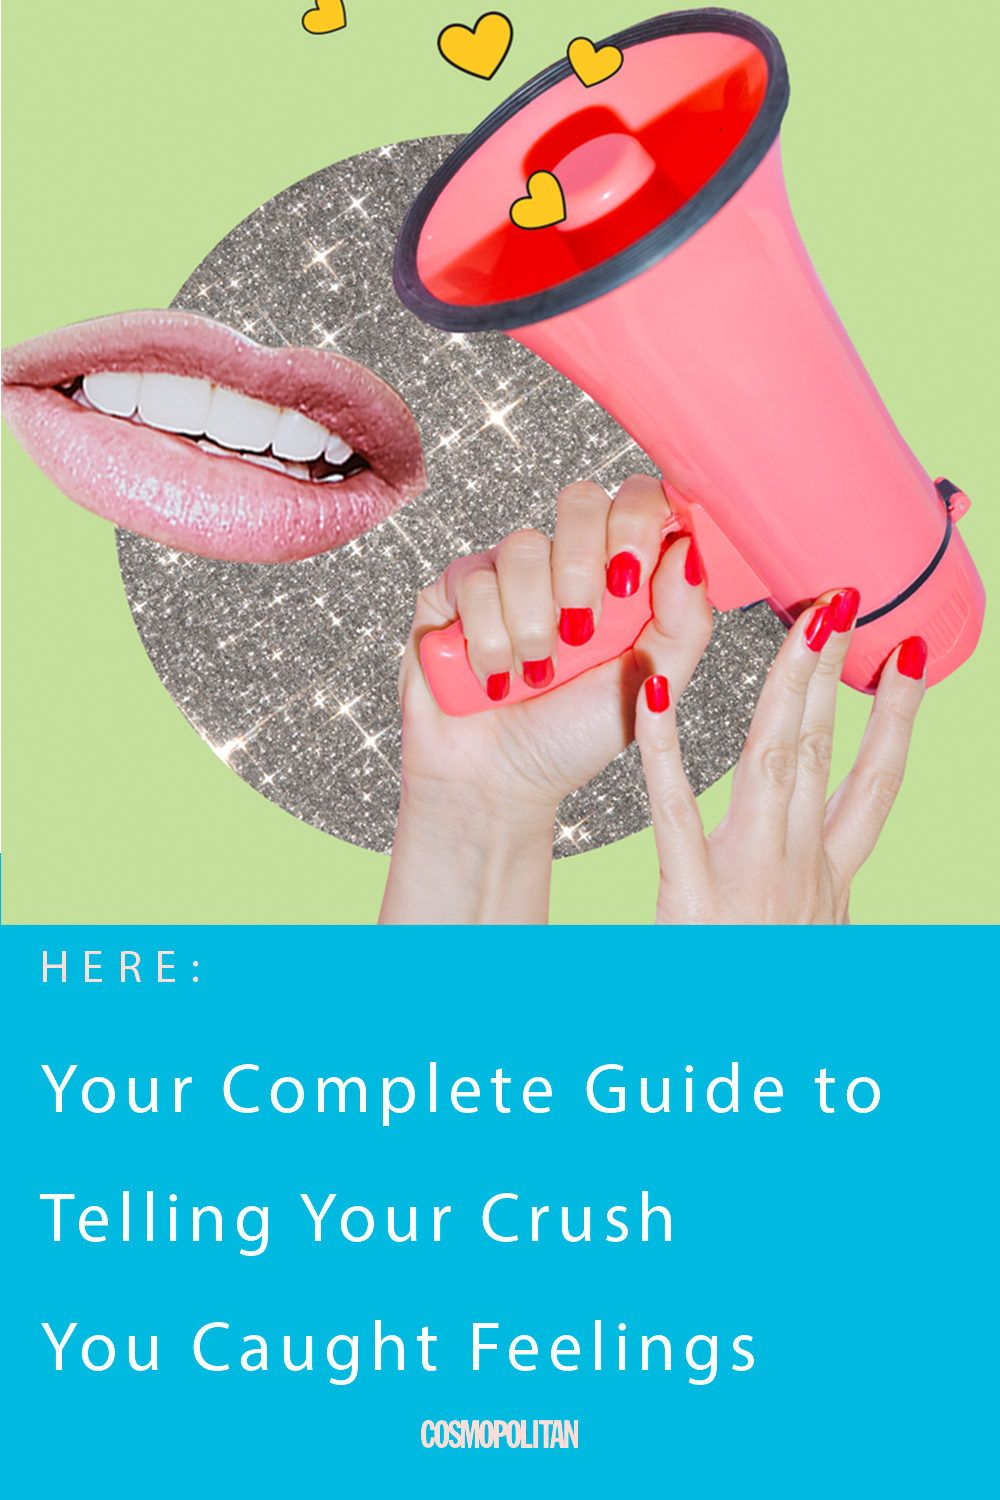 Your Complete Guide to Telling Your Crush You Caught Feelings